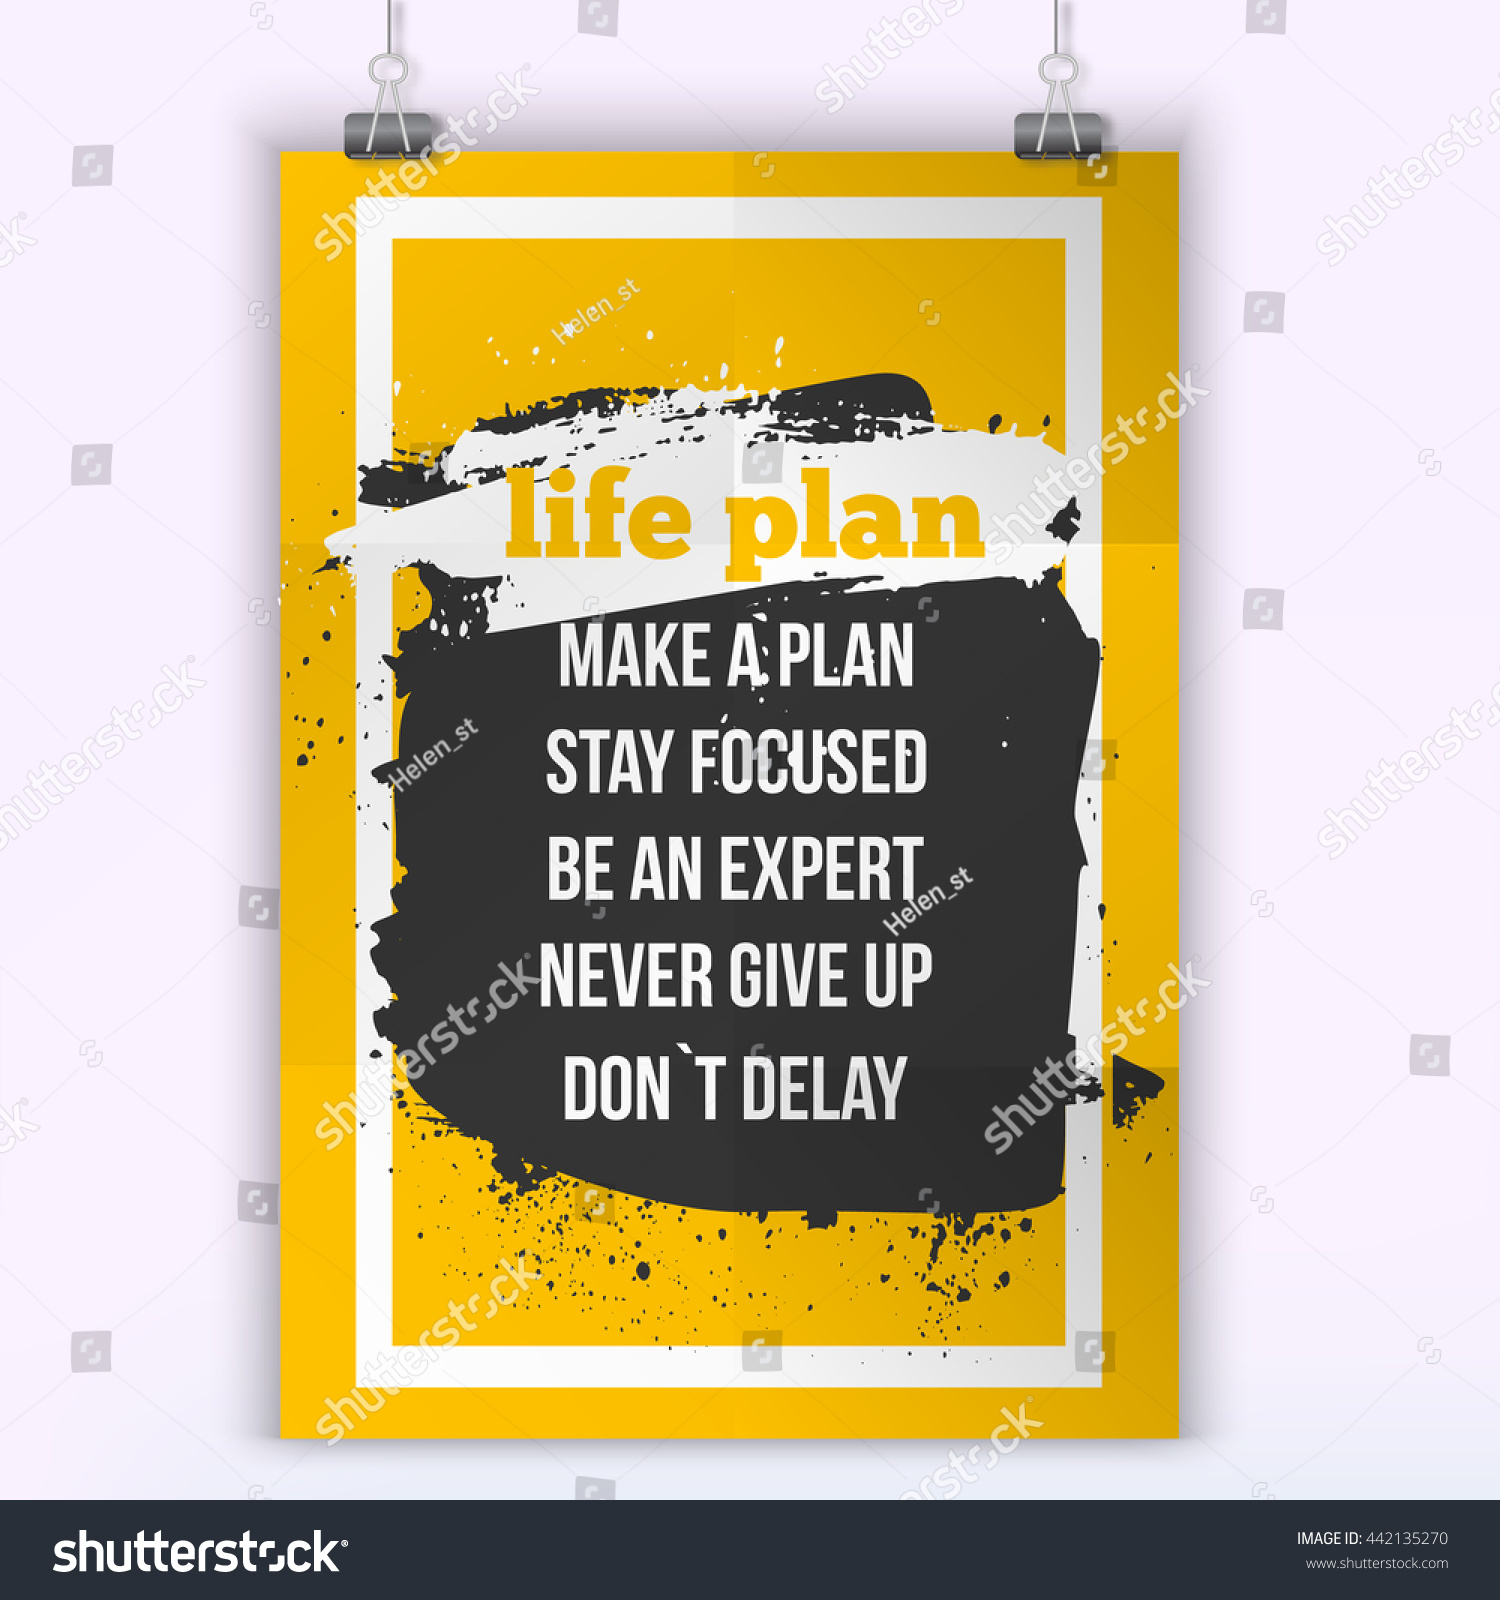 Life Plan Quote Inspirational Concept Image Stock Vector (Royalty ...